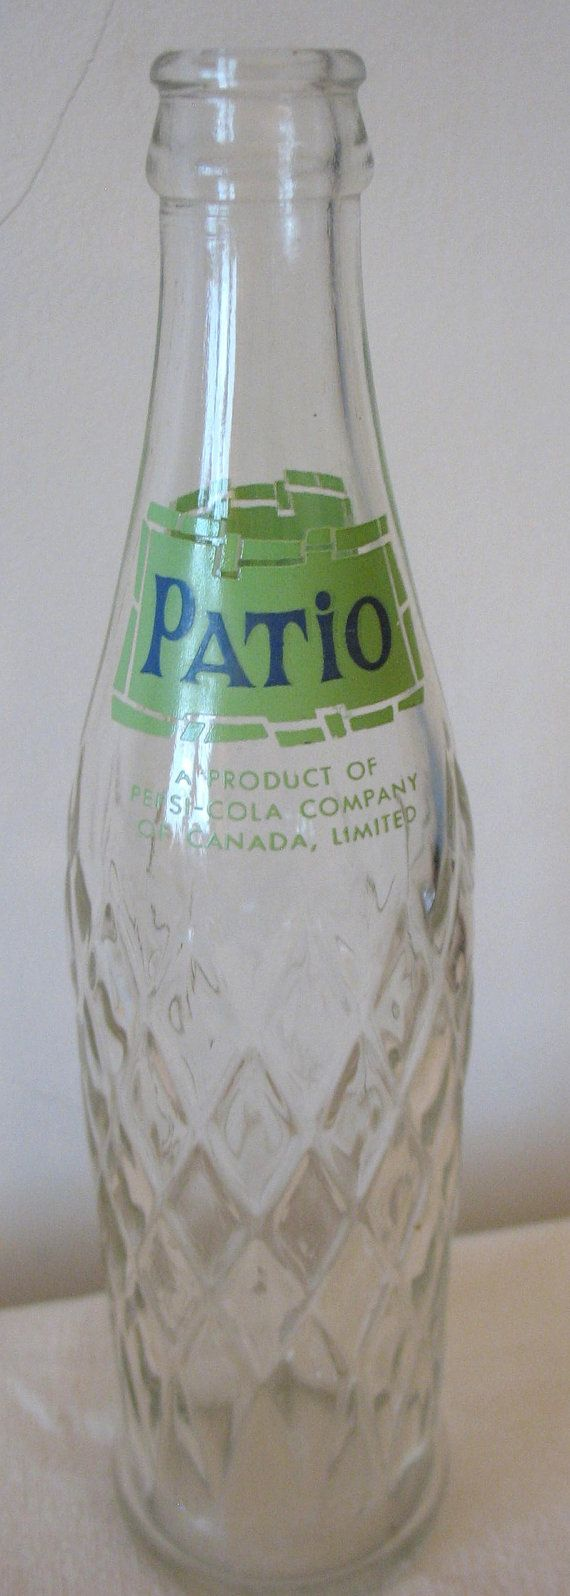 Patio Bottle ACL Painted Label Pop Bottle Soda Bottle Bilingual English And  French Pepsi Cola Of Canada Product 10 Ounce Clear Glass